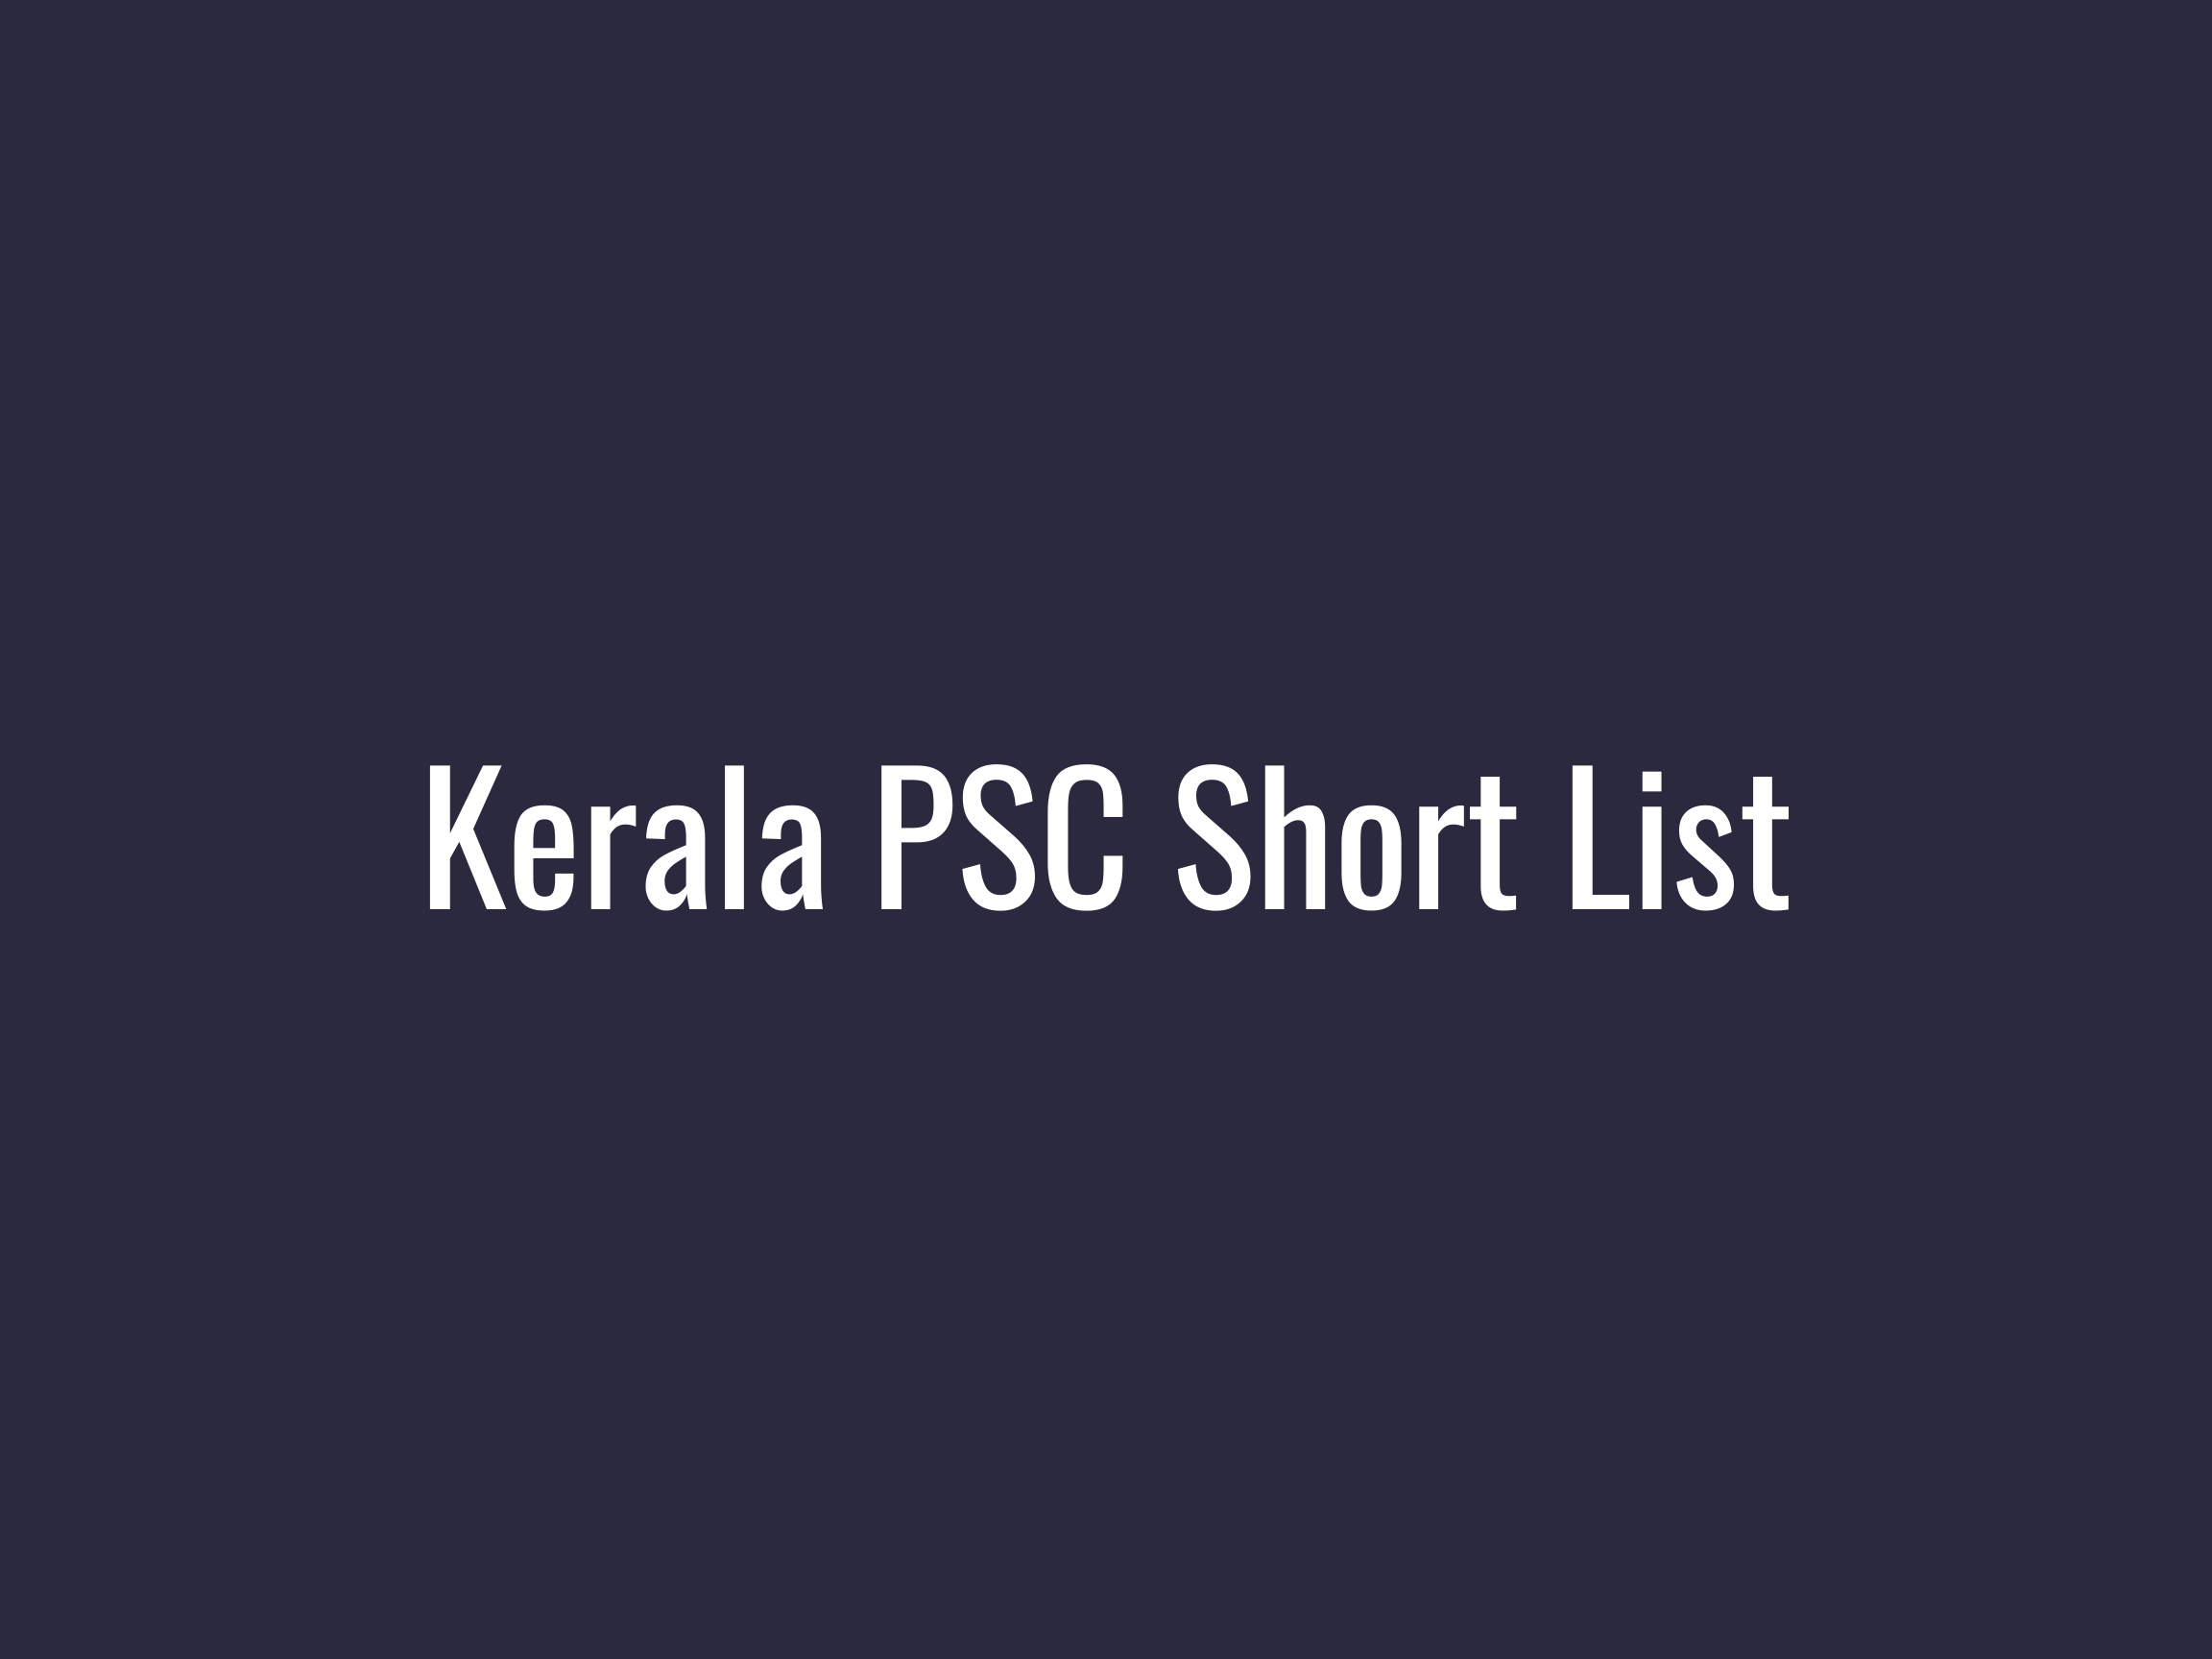 Kerala PSC Result - Short List